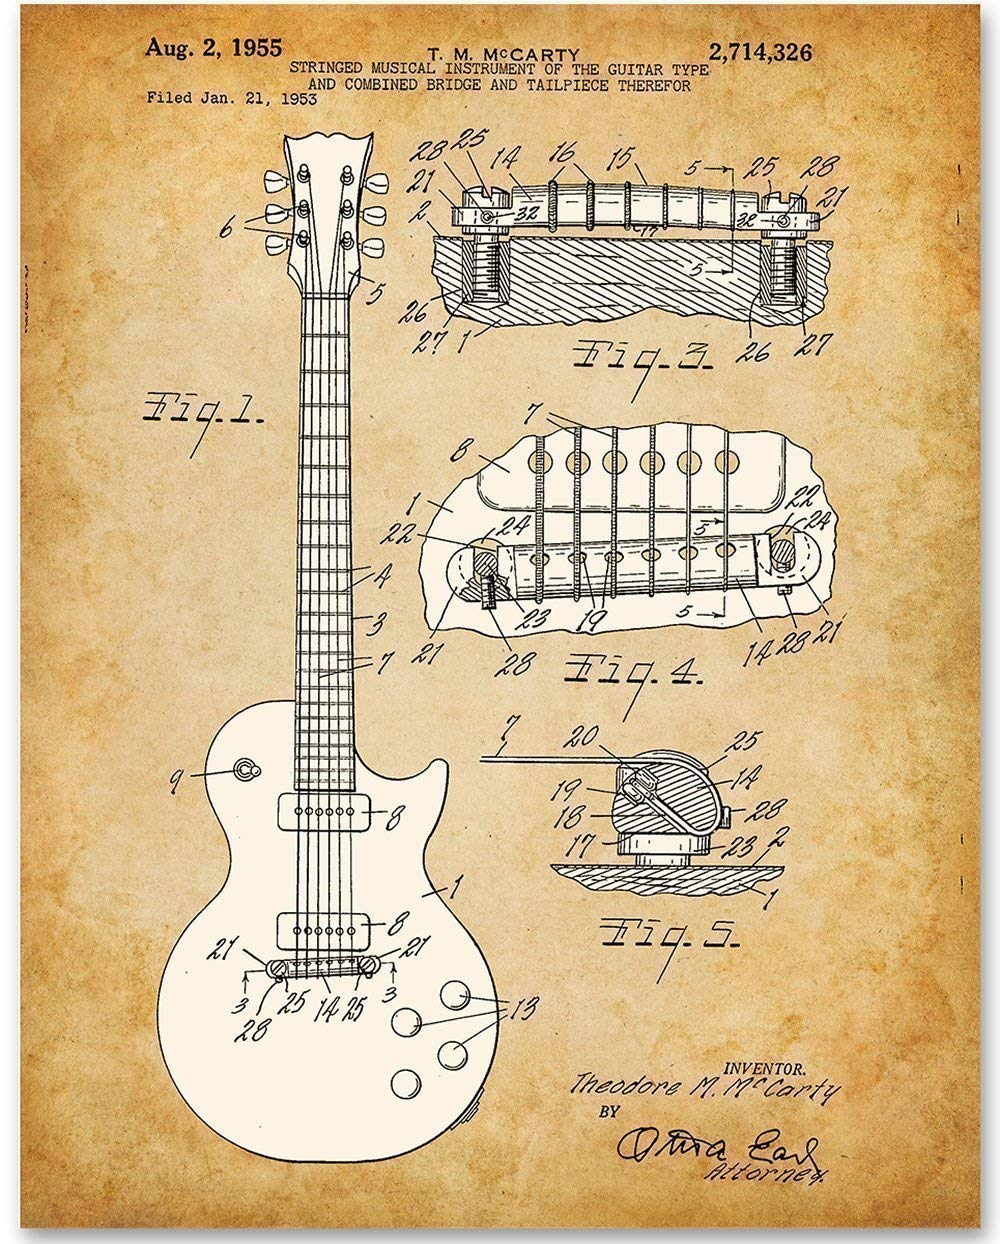 Amazon.com: 1955 McCarty Gibson Les Paul Guitar - 11x14 Unframed ...